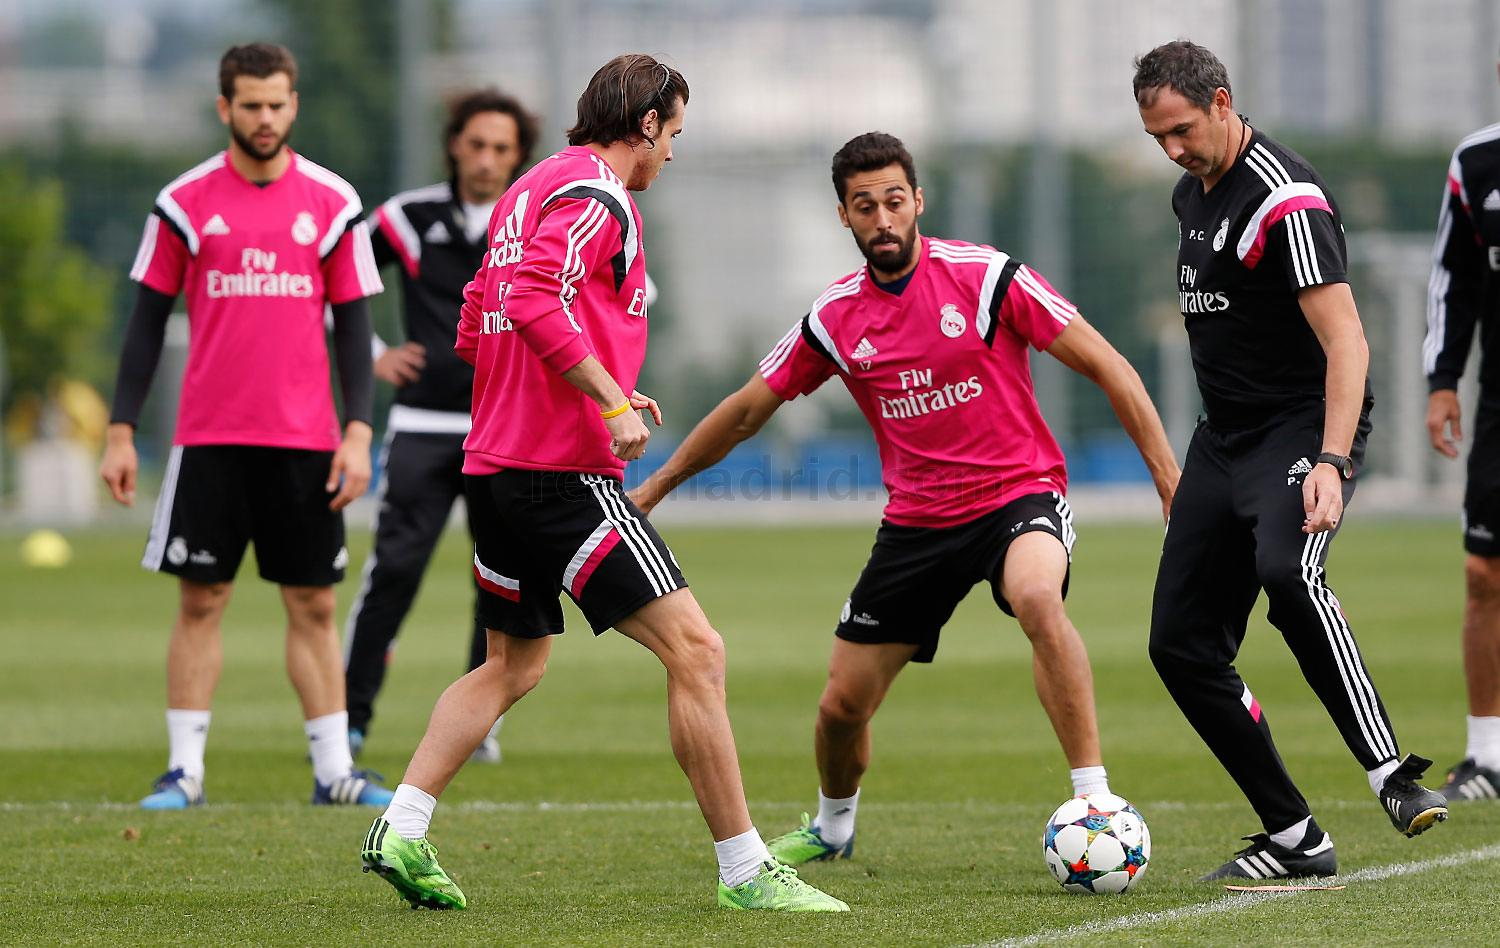 Real Madrid - Entrenamiento del Real Madrid - 03-05-2015